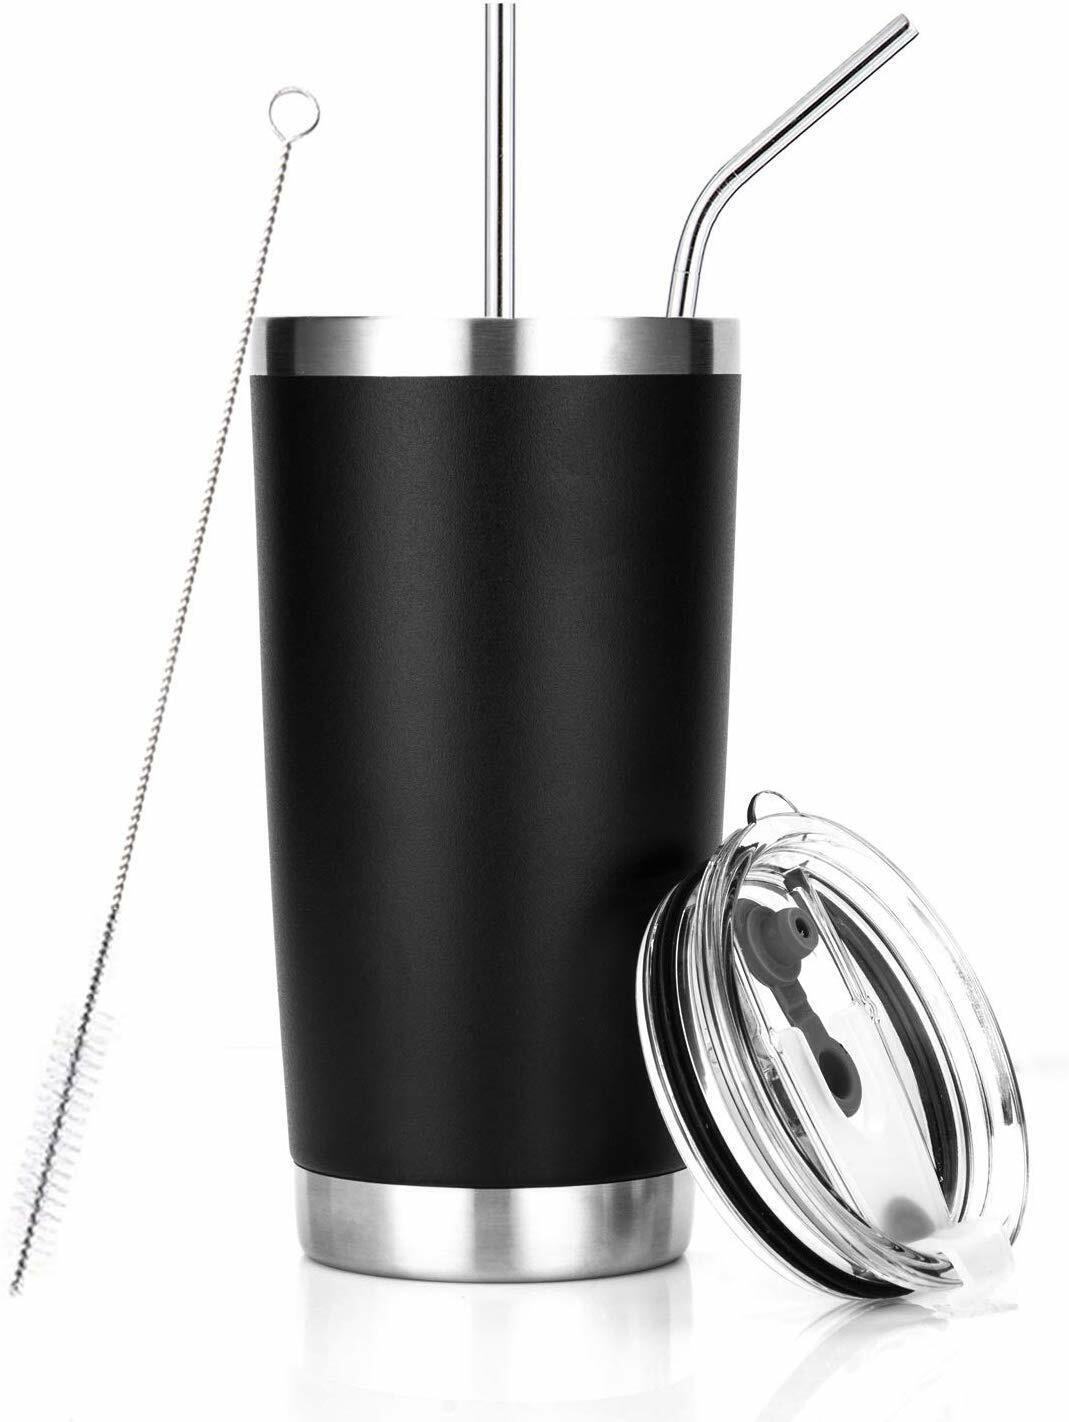 20 oz Tumbler Stainless Steel Insulated Travel Mug with Stra